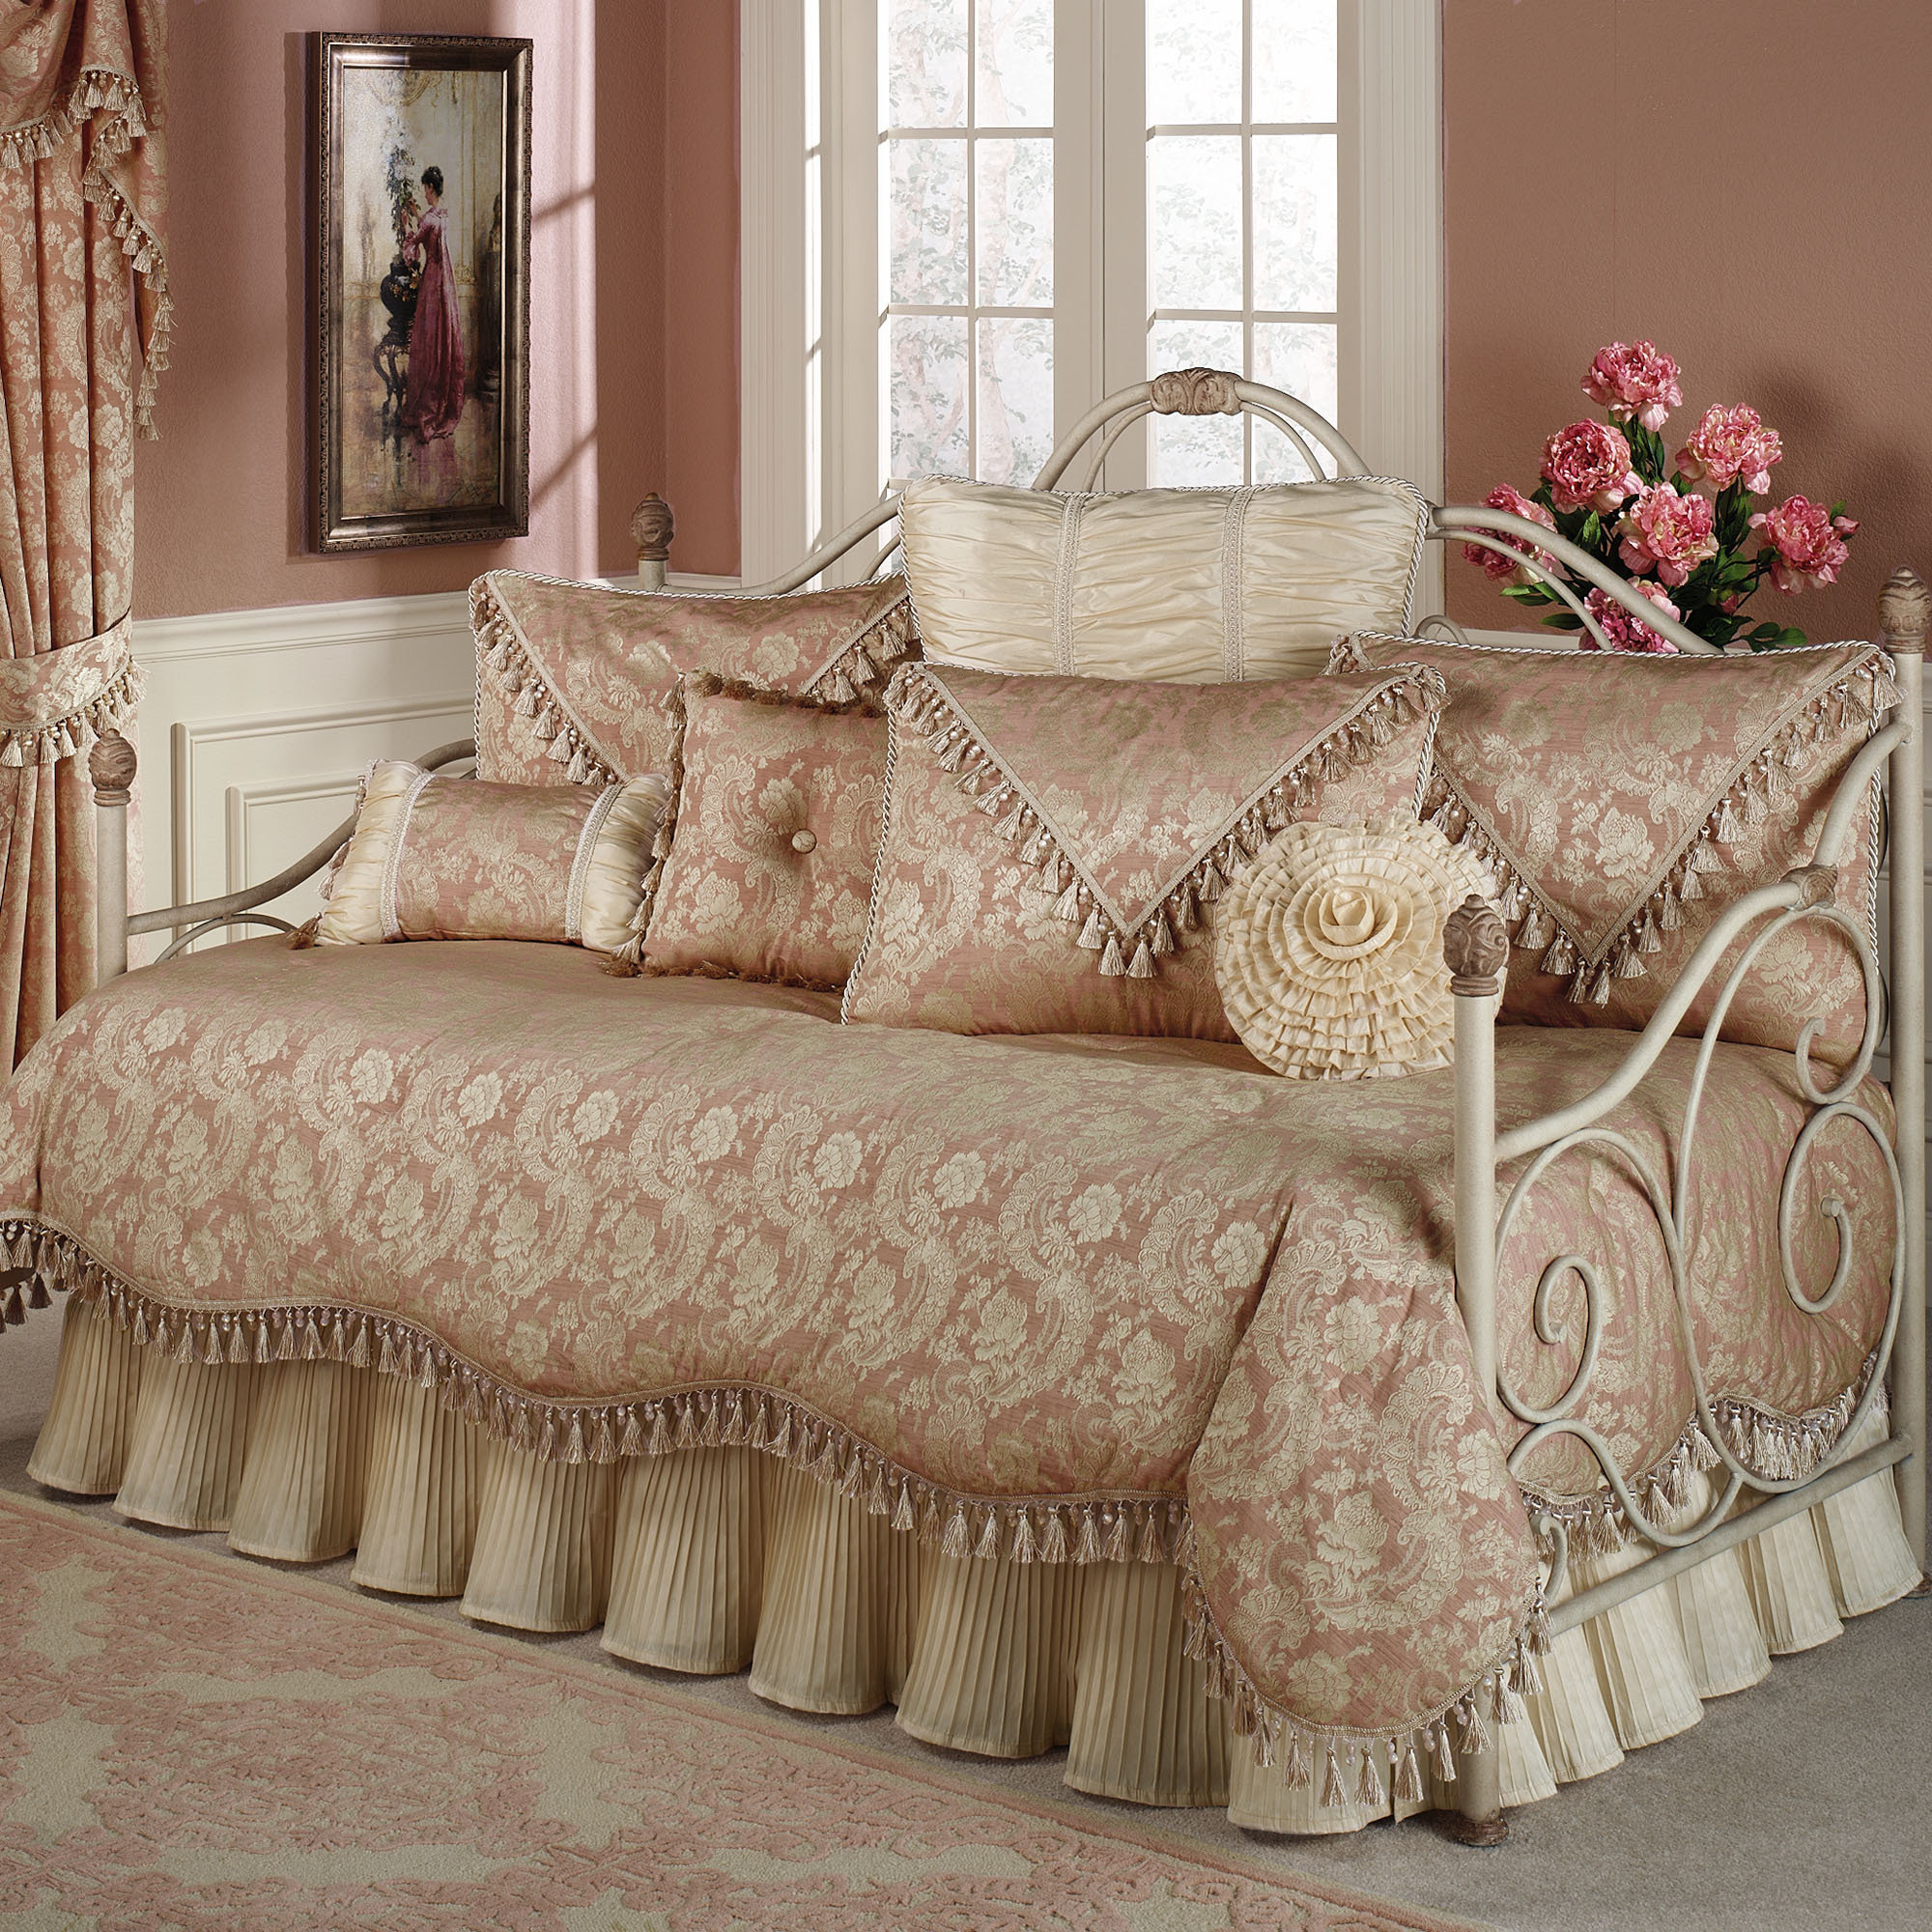 daybed bedding sets clearance photo - 3